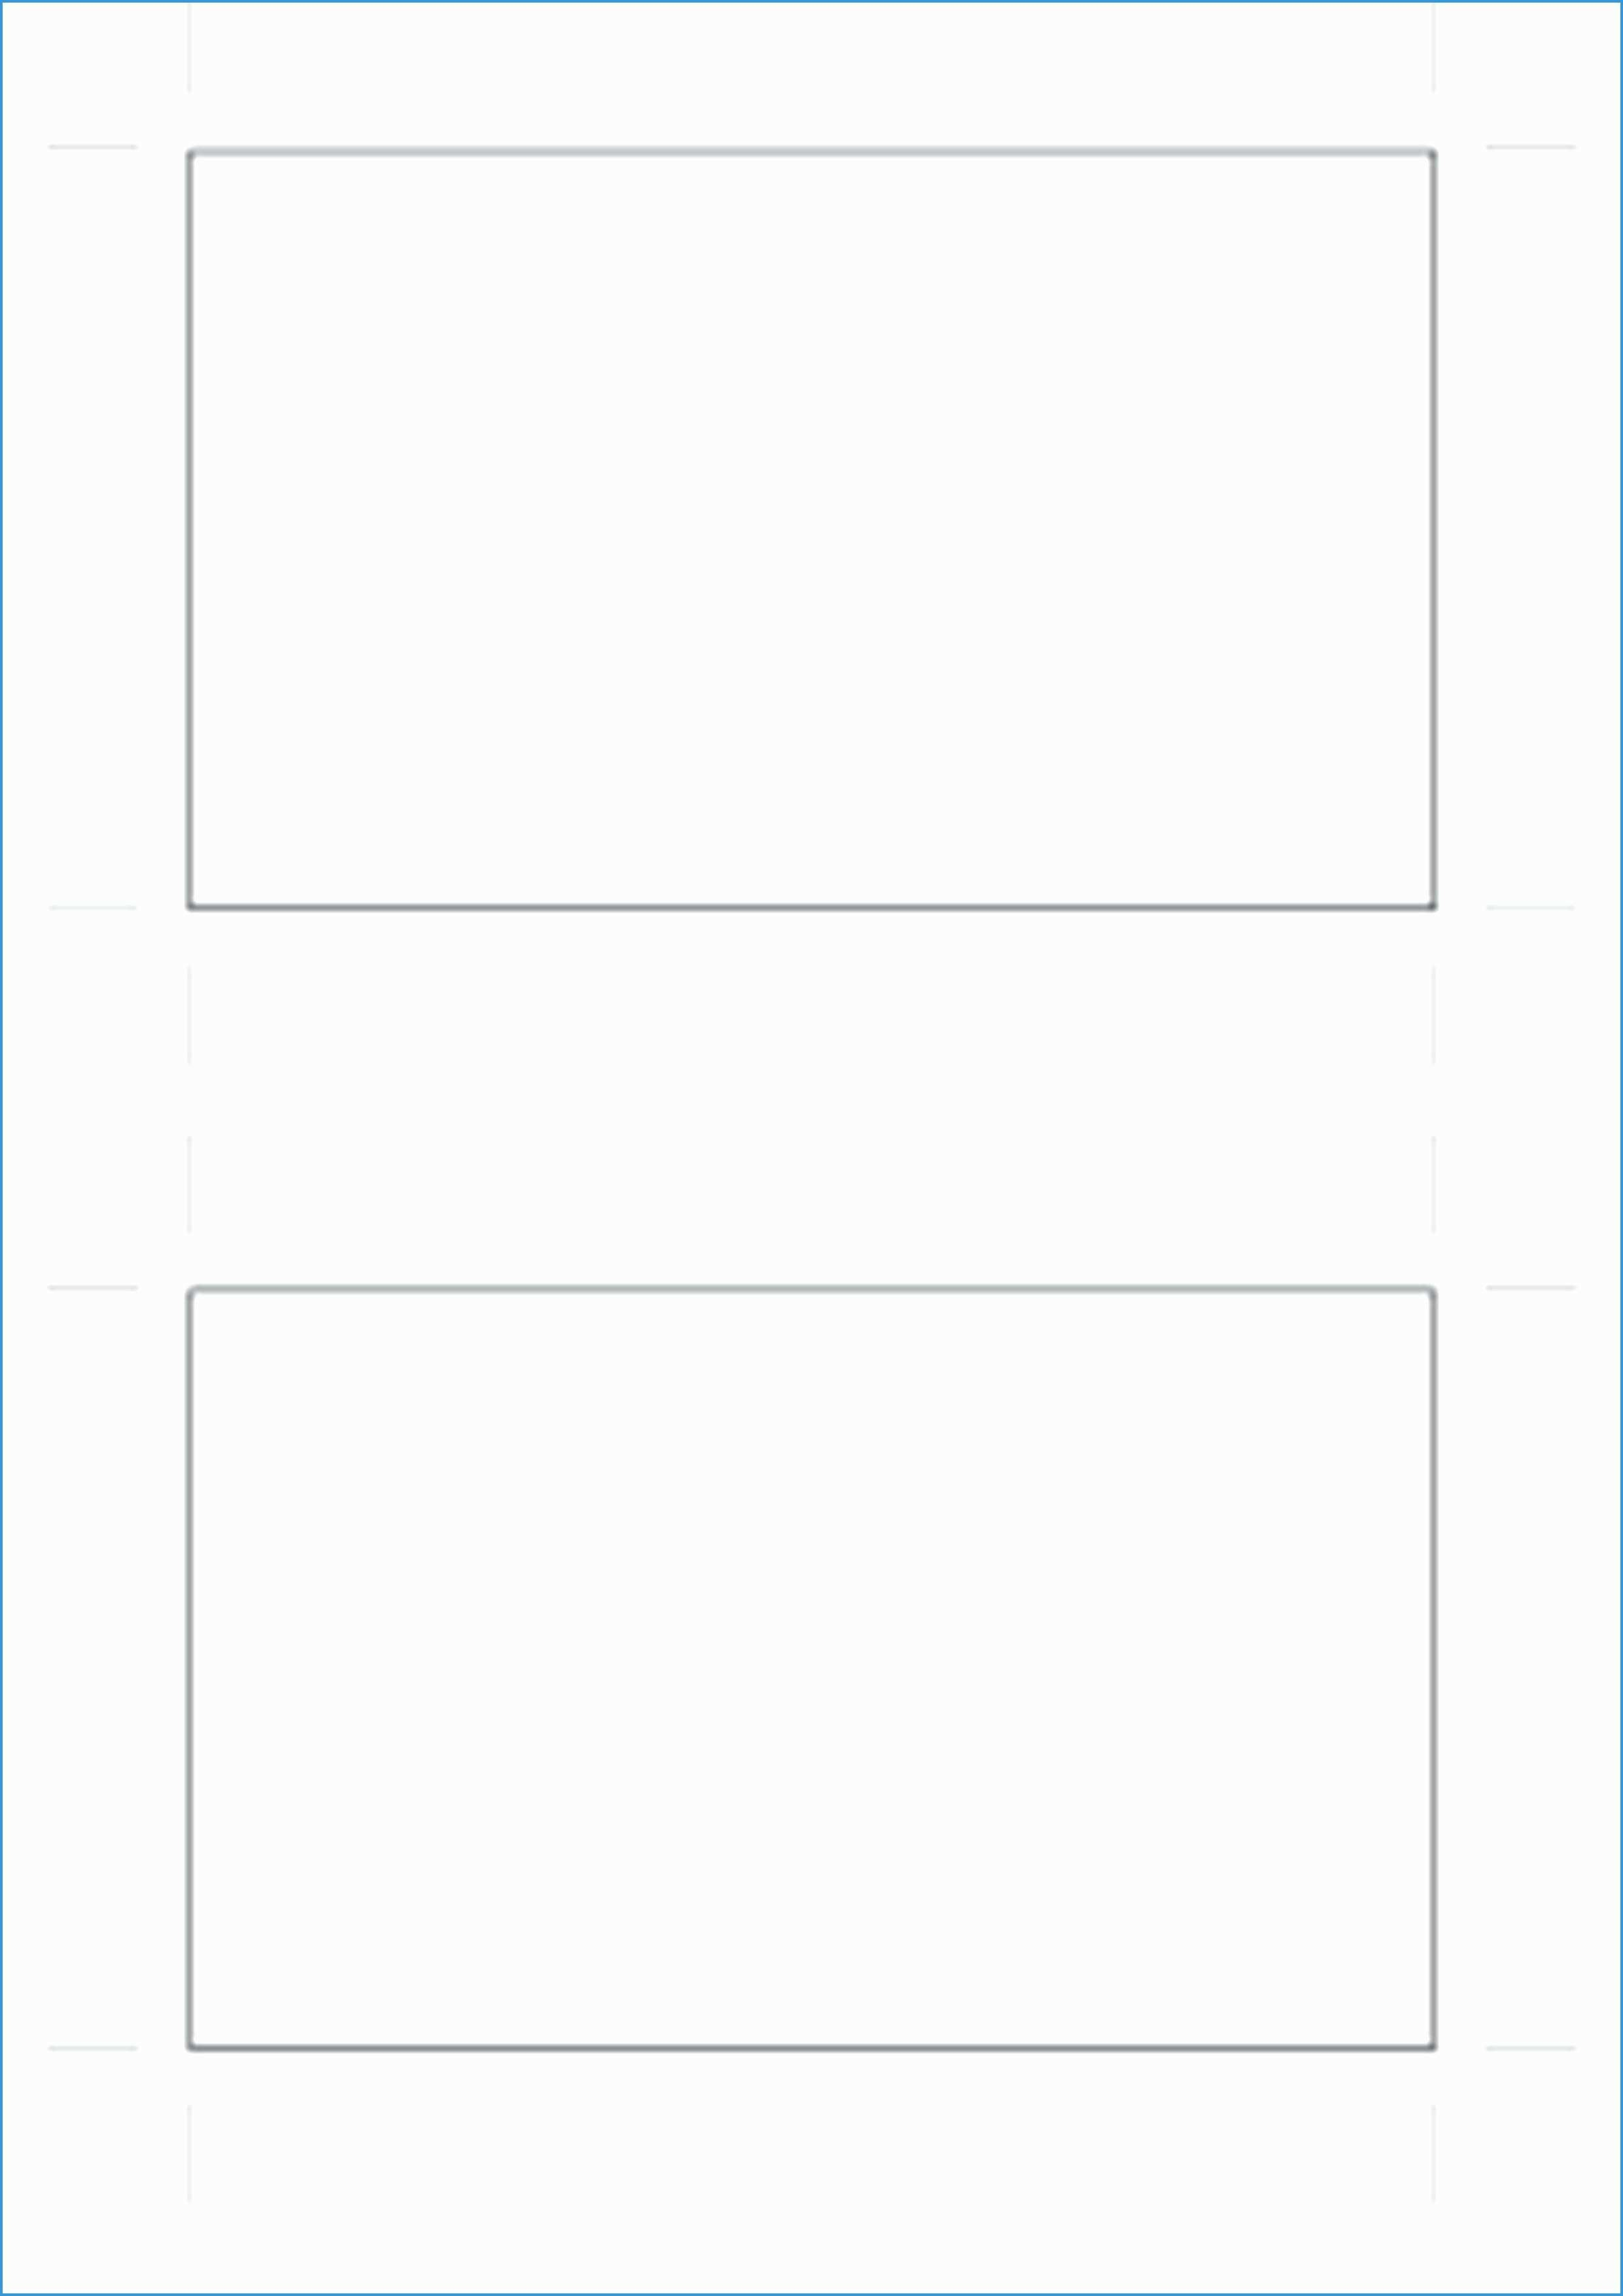 004 Blank Business Card Template Free Templates For Word Within Ms Wo Free Business Card Templates Business Card Template Word Business Card Templates Download